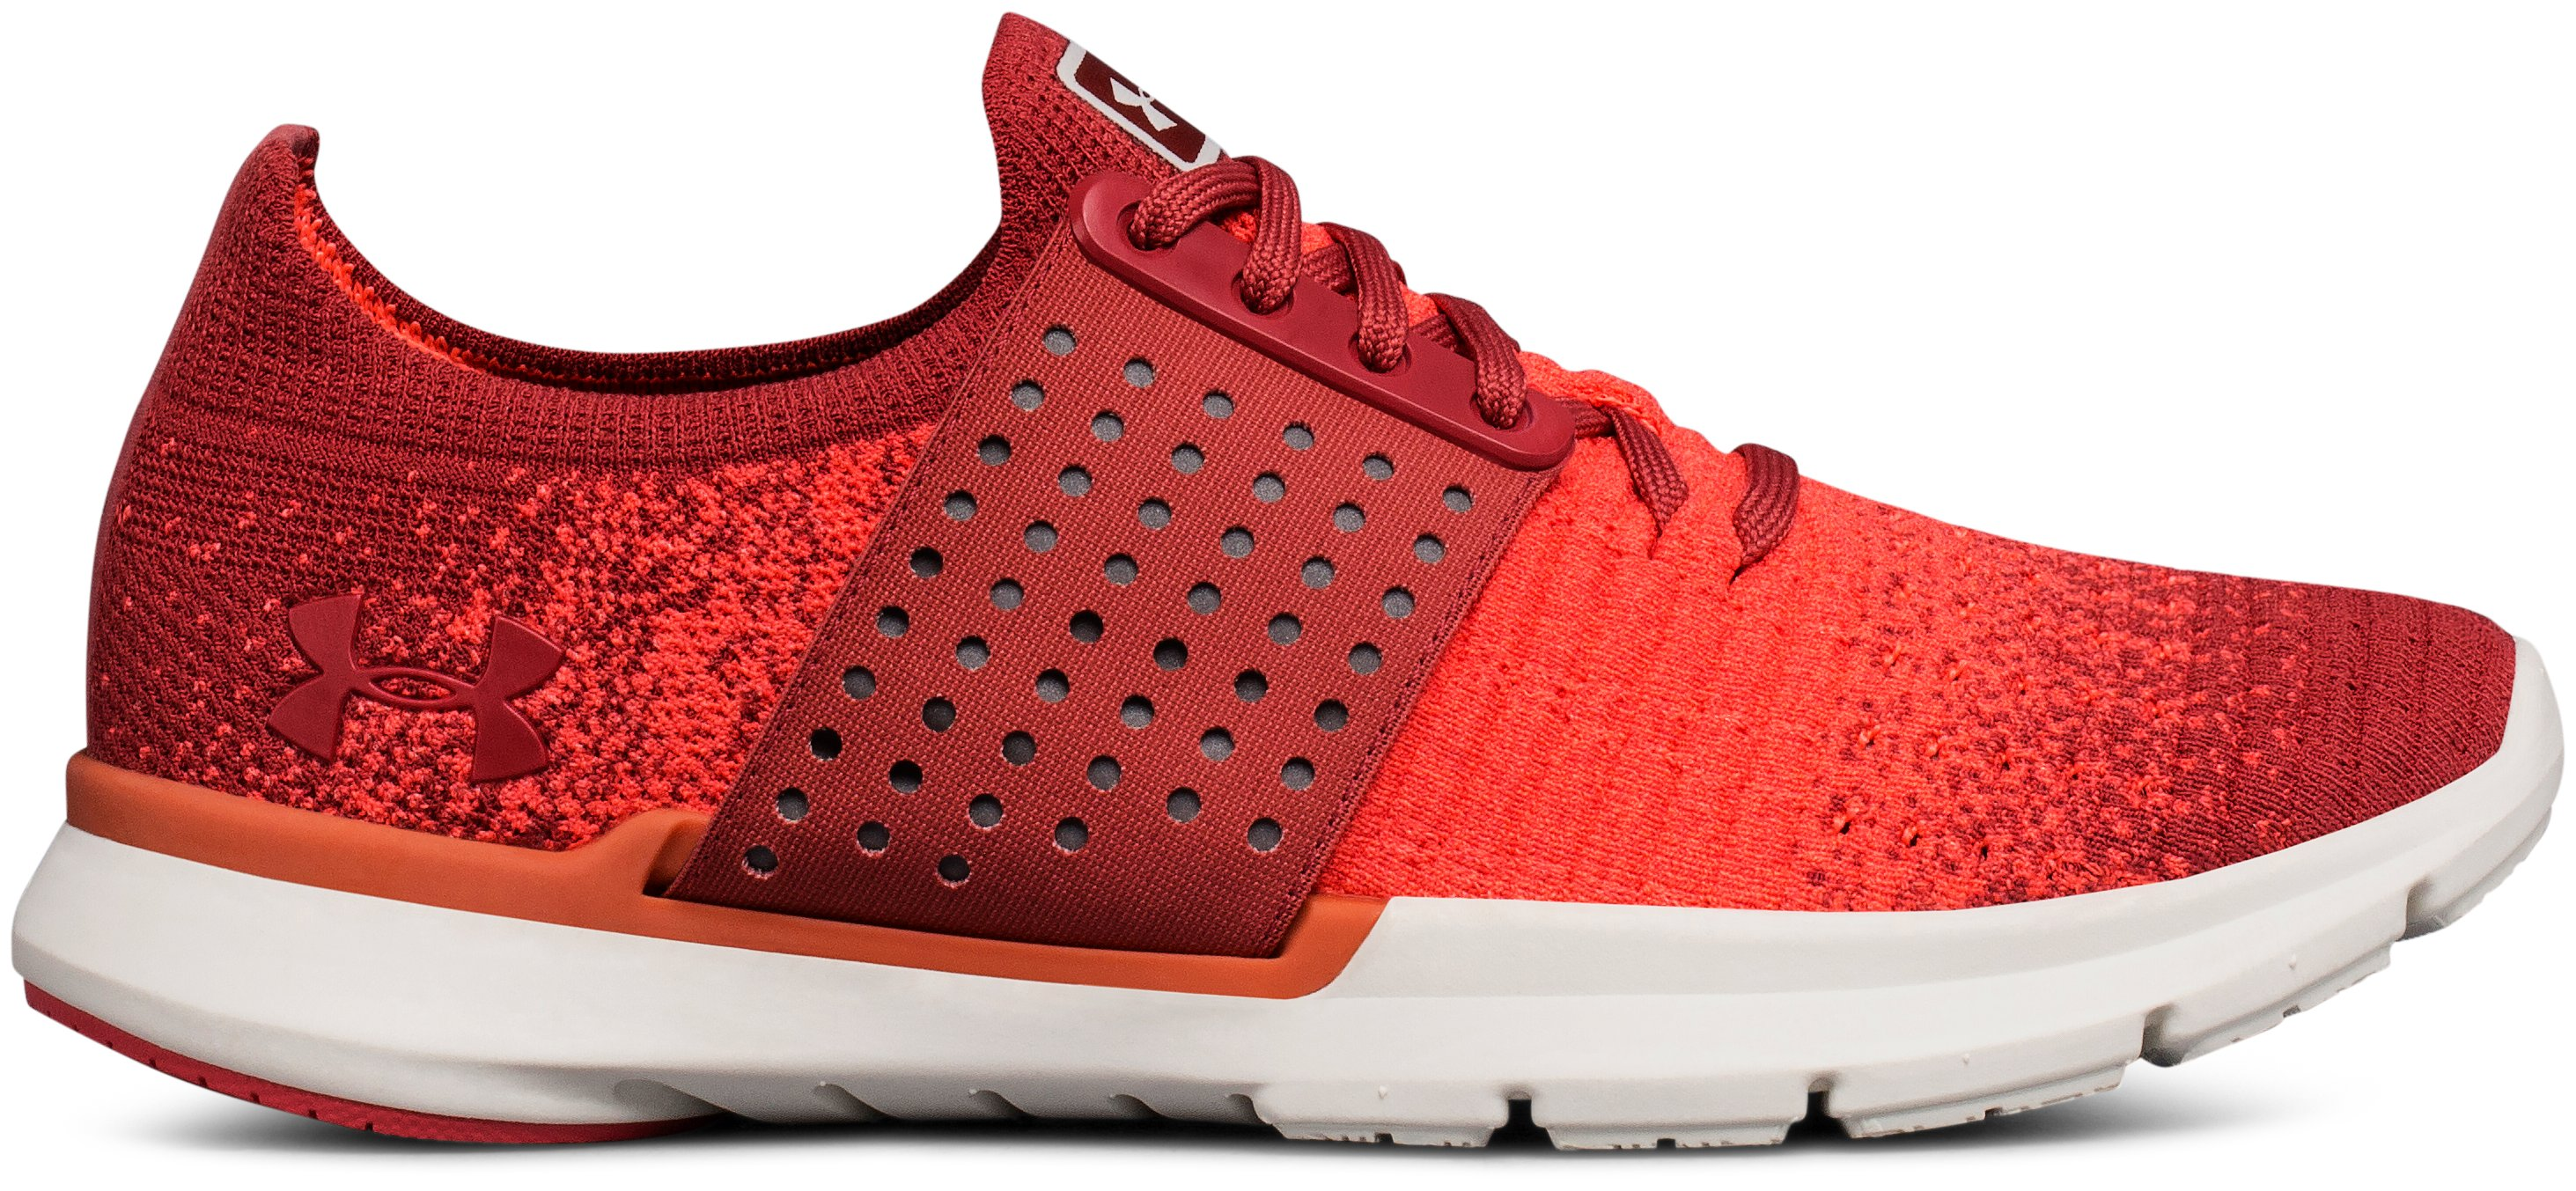 Women's UA Threadborne Slingwrap Fade Running Shoes, RUSTIC RED, undefined